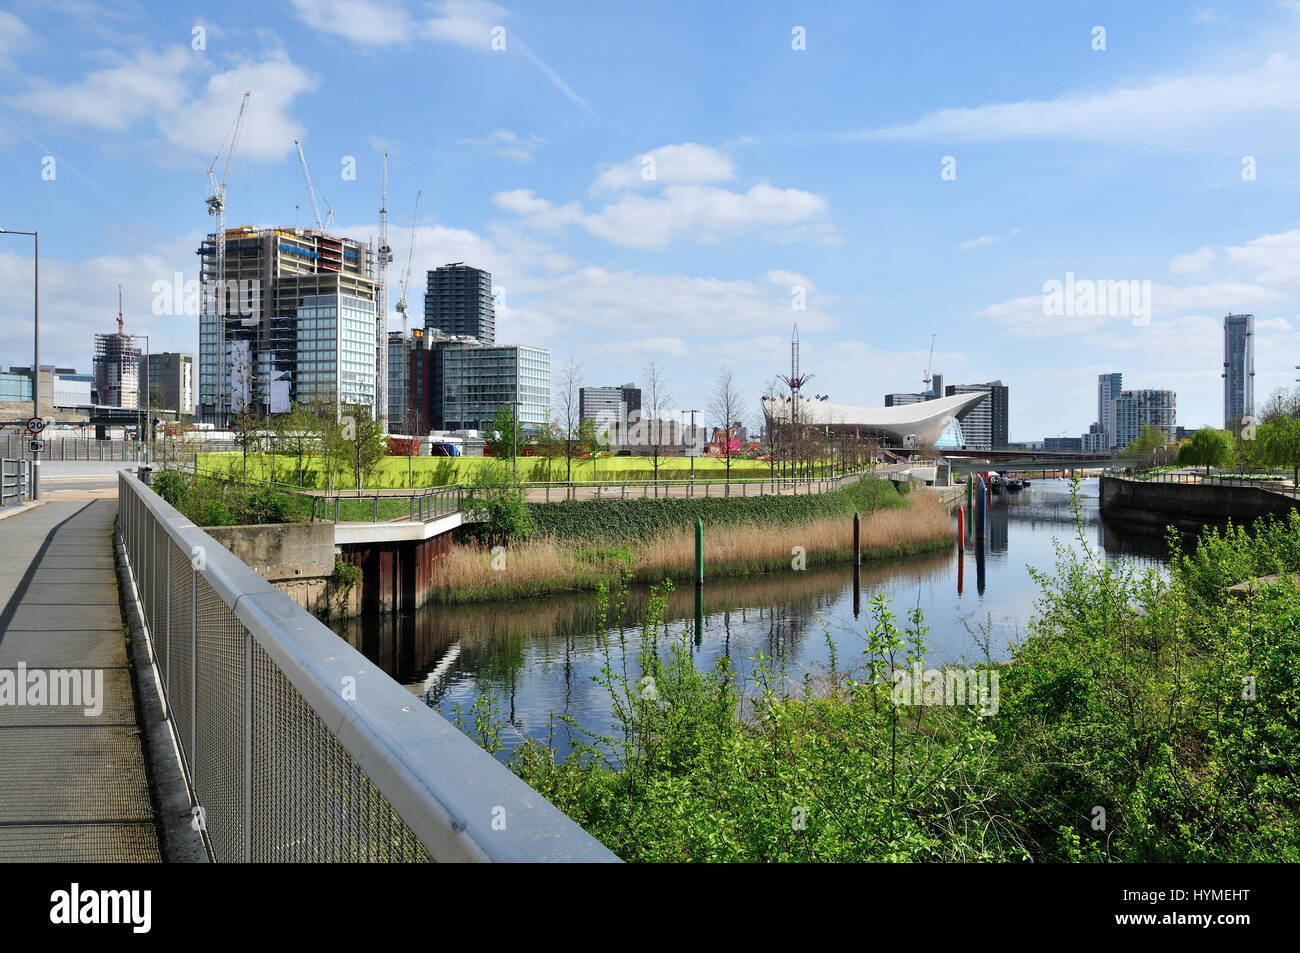 New buildings under construction at Stratford East London, viewed from the Queen Elizabeth Olympic Park - Stock Image